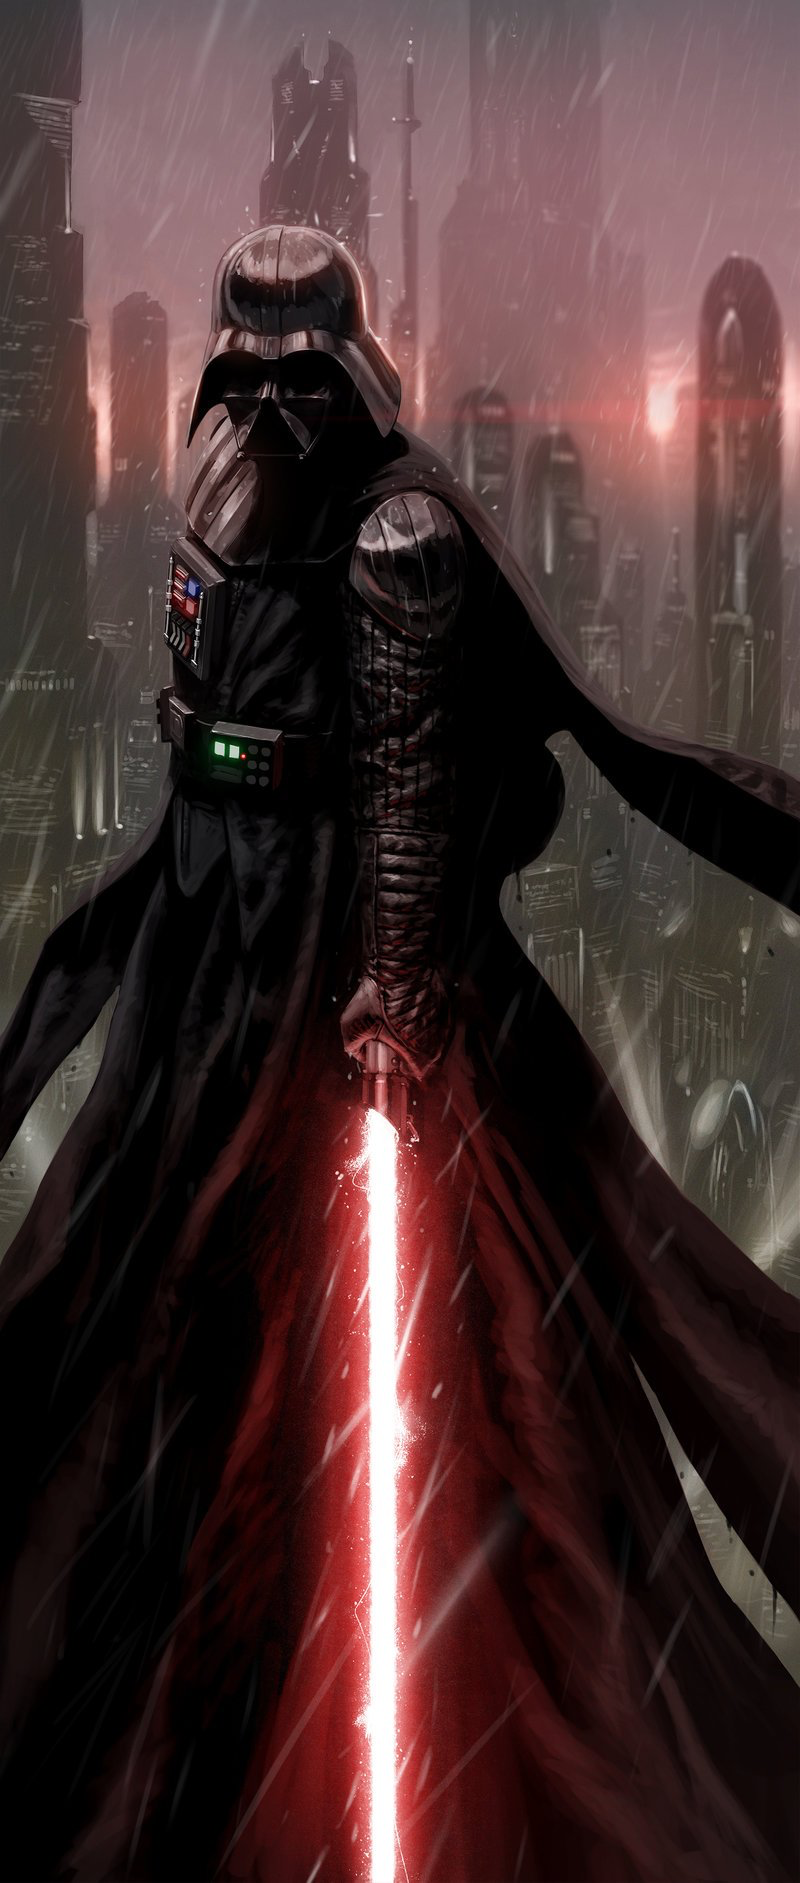 Darth Vader... Lord of the Sith                                                                                                                                                                                 More